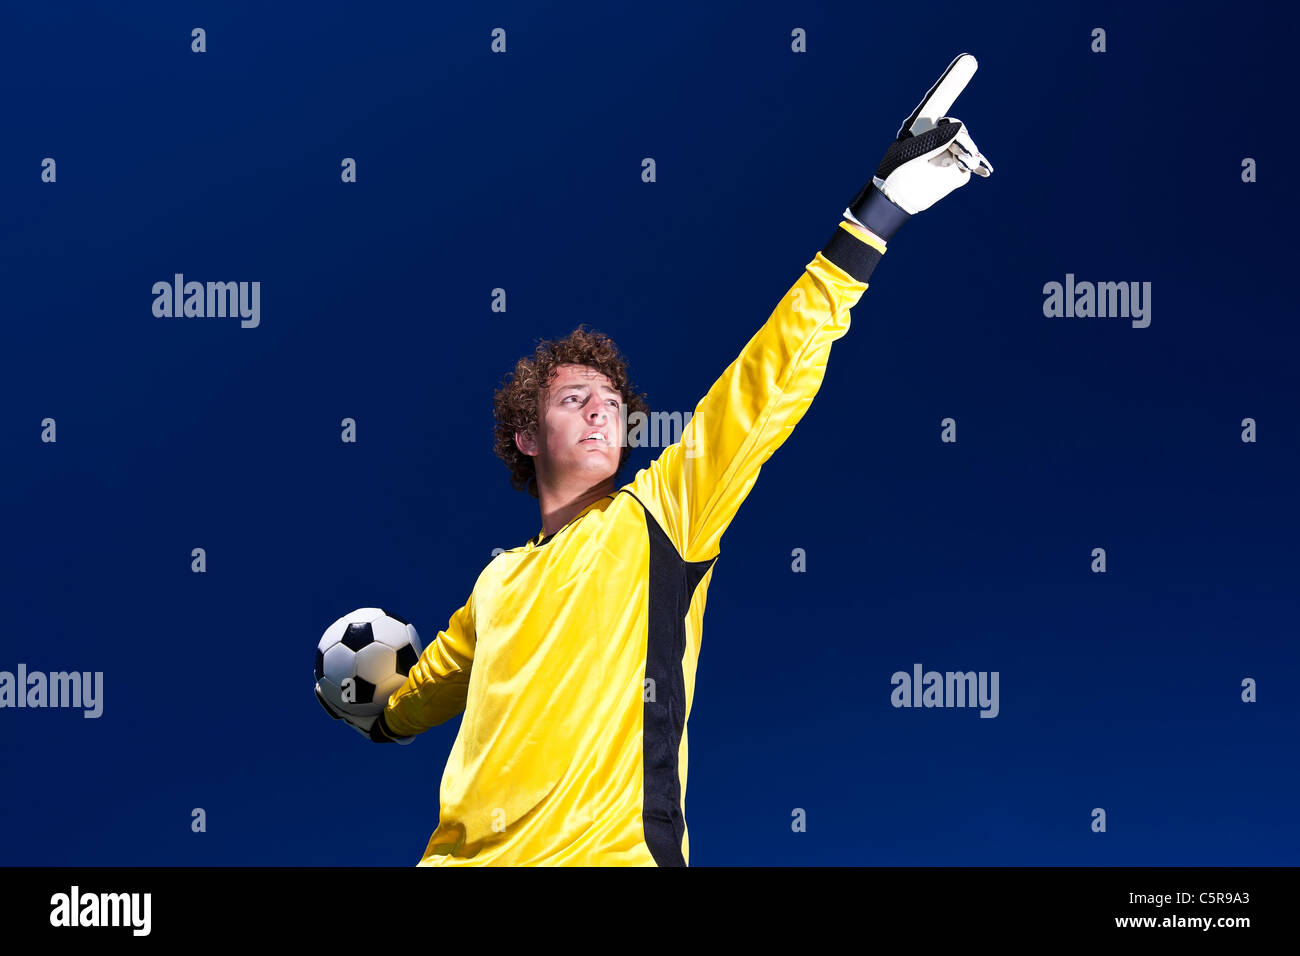 A goalkeeper gets ready to deliver ball. - Stock Image